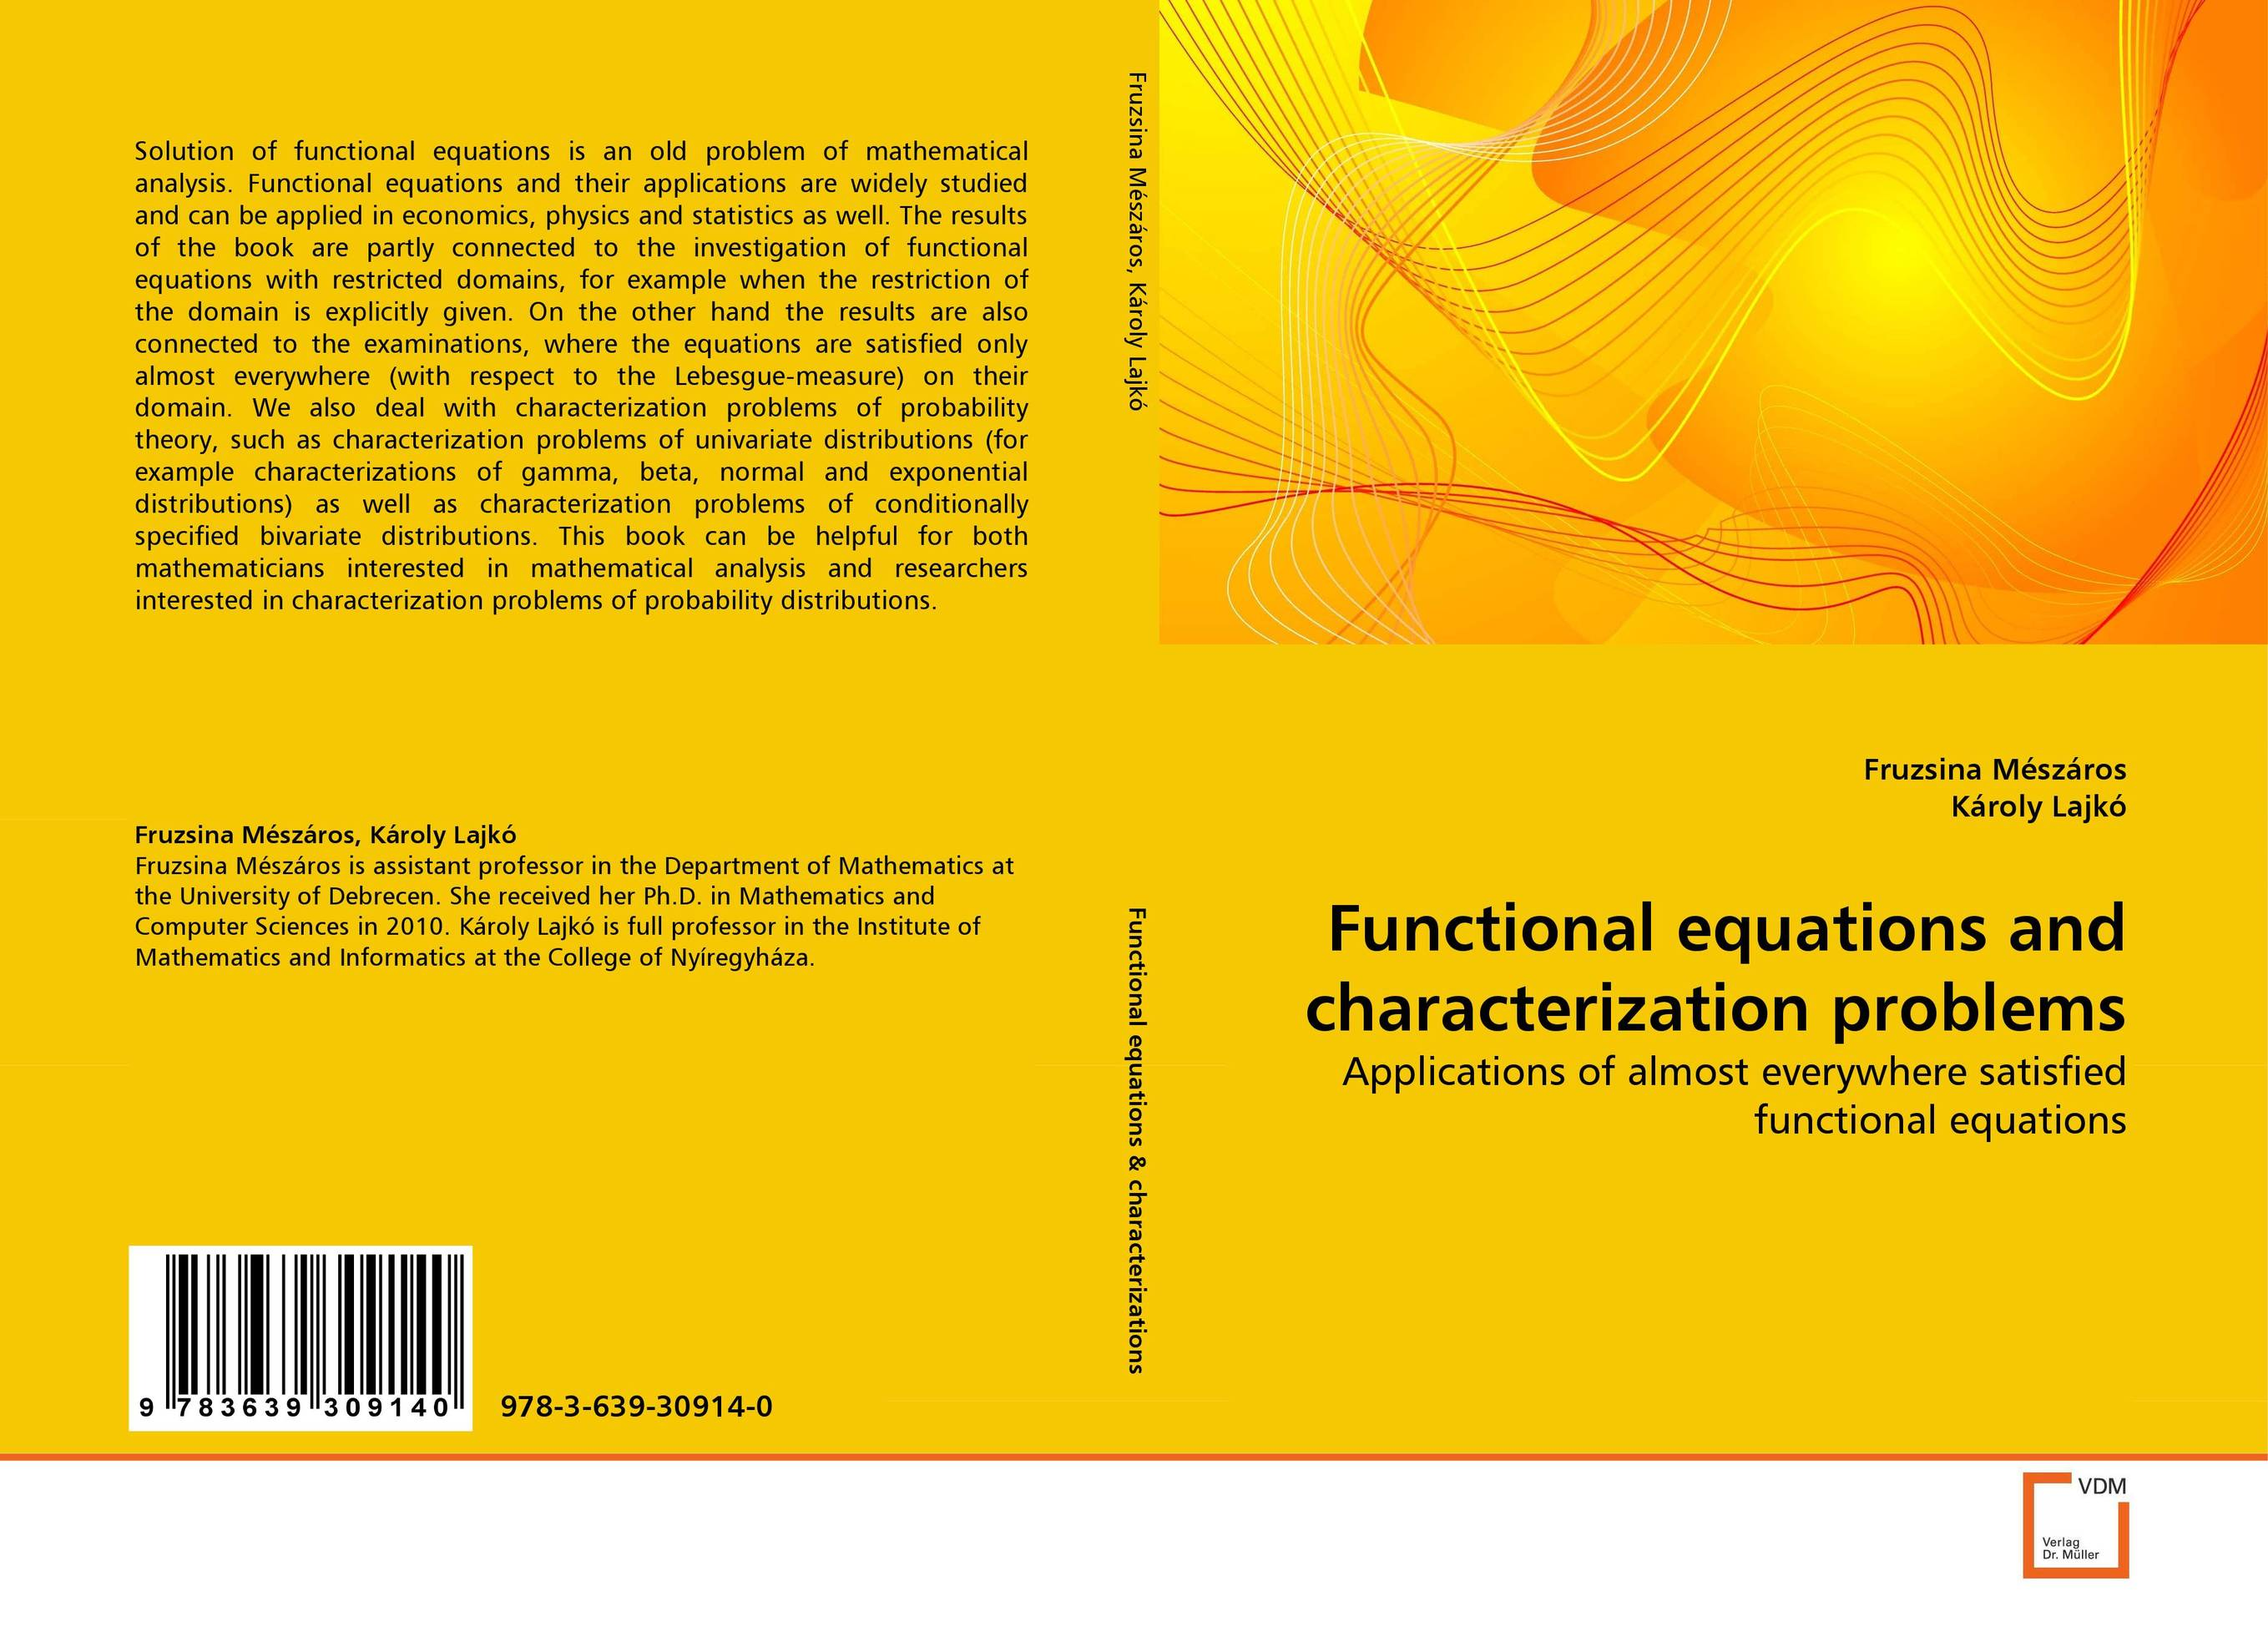 Functional equations and characterization problems lectures on functional analysis